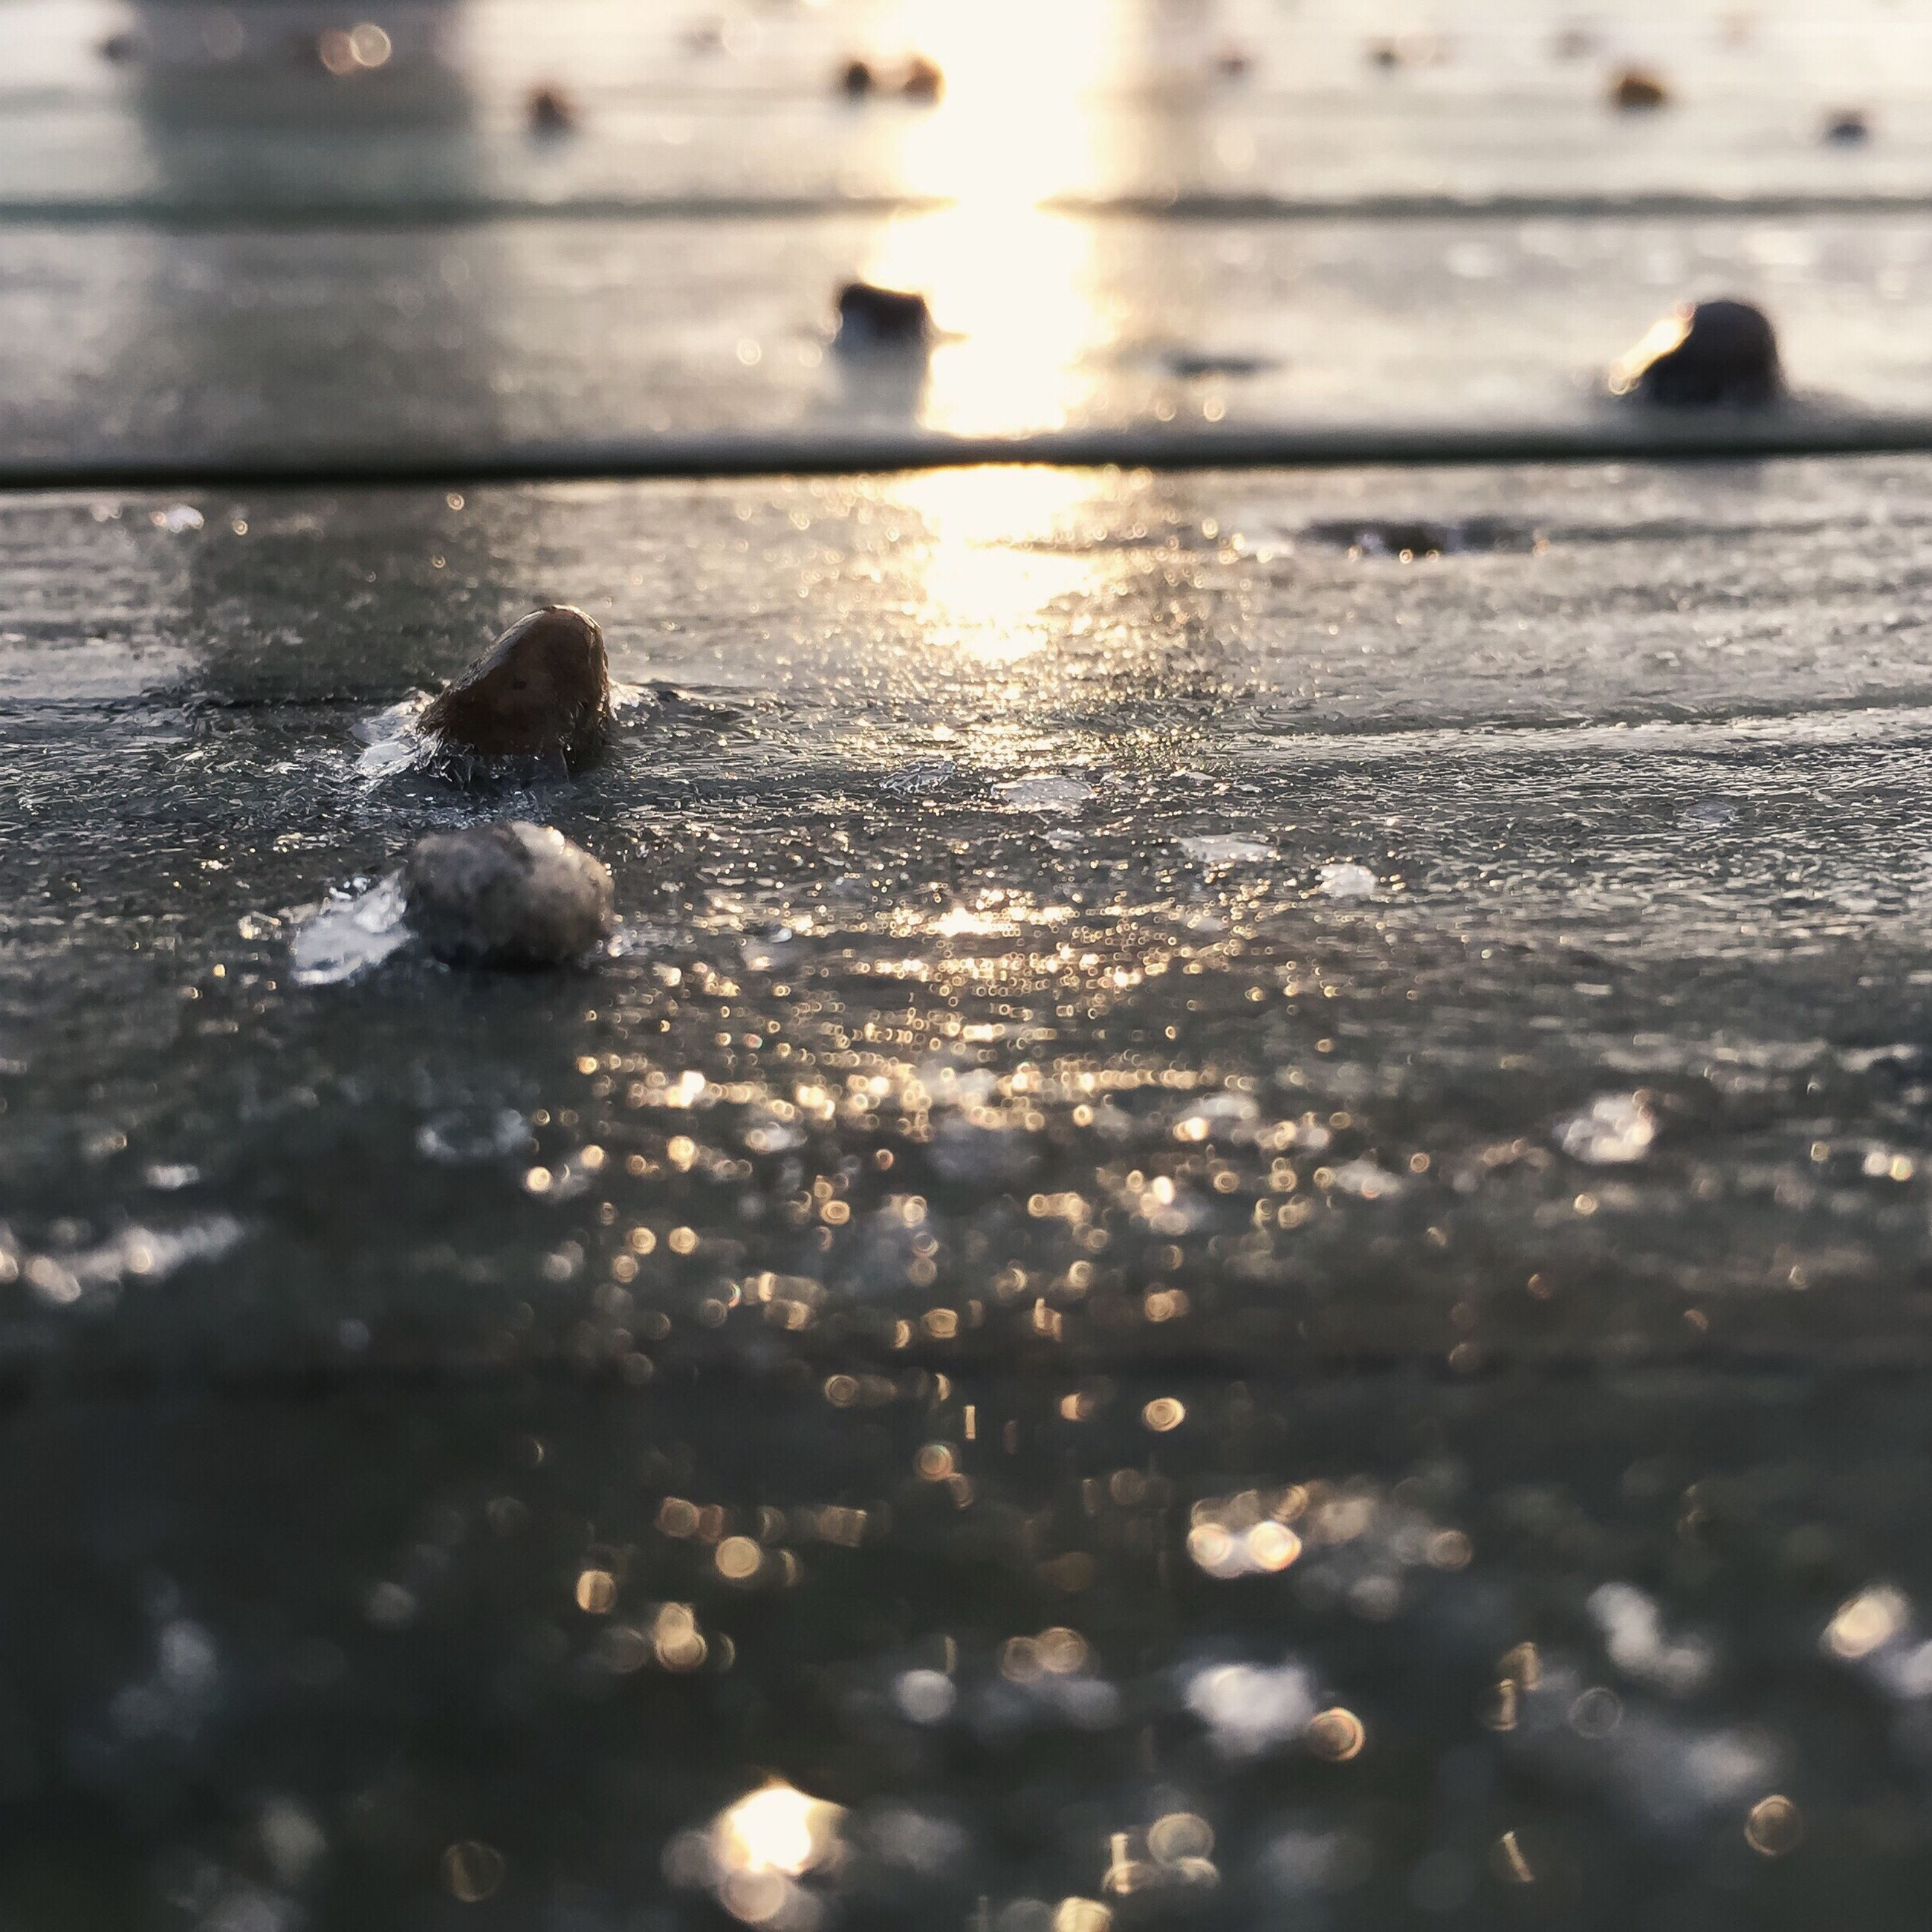 water, reflection, sunset, wet, surface level, selective focus, nature, sea, tranquility, sunlight, beach, sun, outdoors, beauty in nature, no people, close-up, focus on foreground, tranquil scene, scenics, waterfront